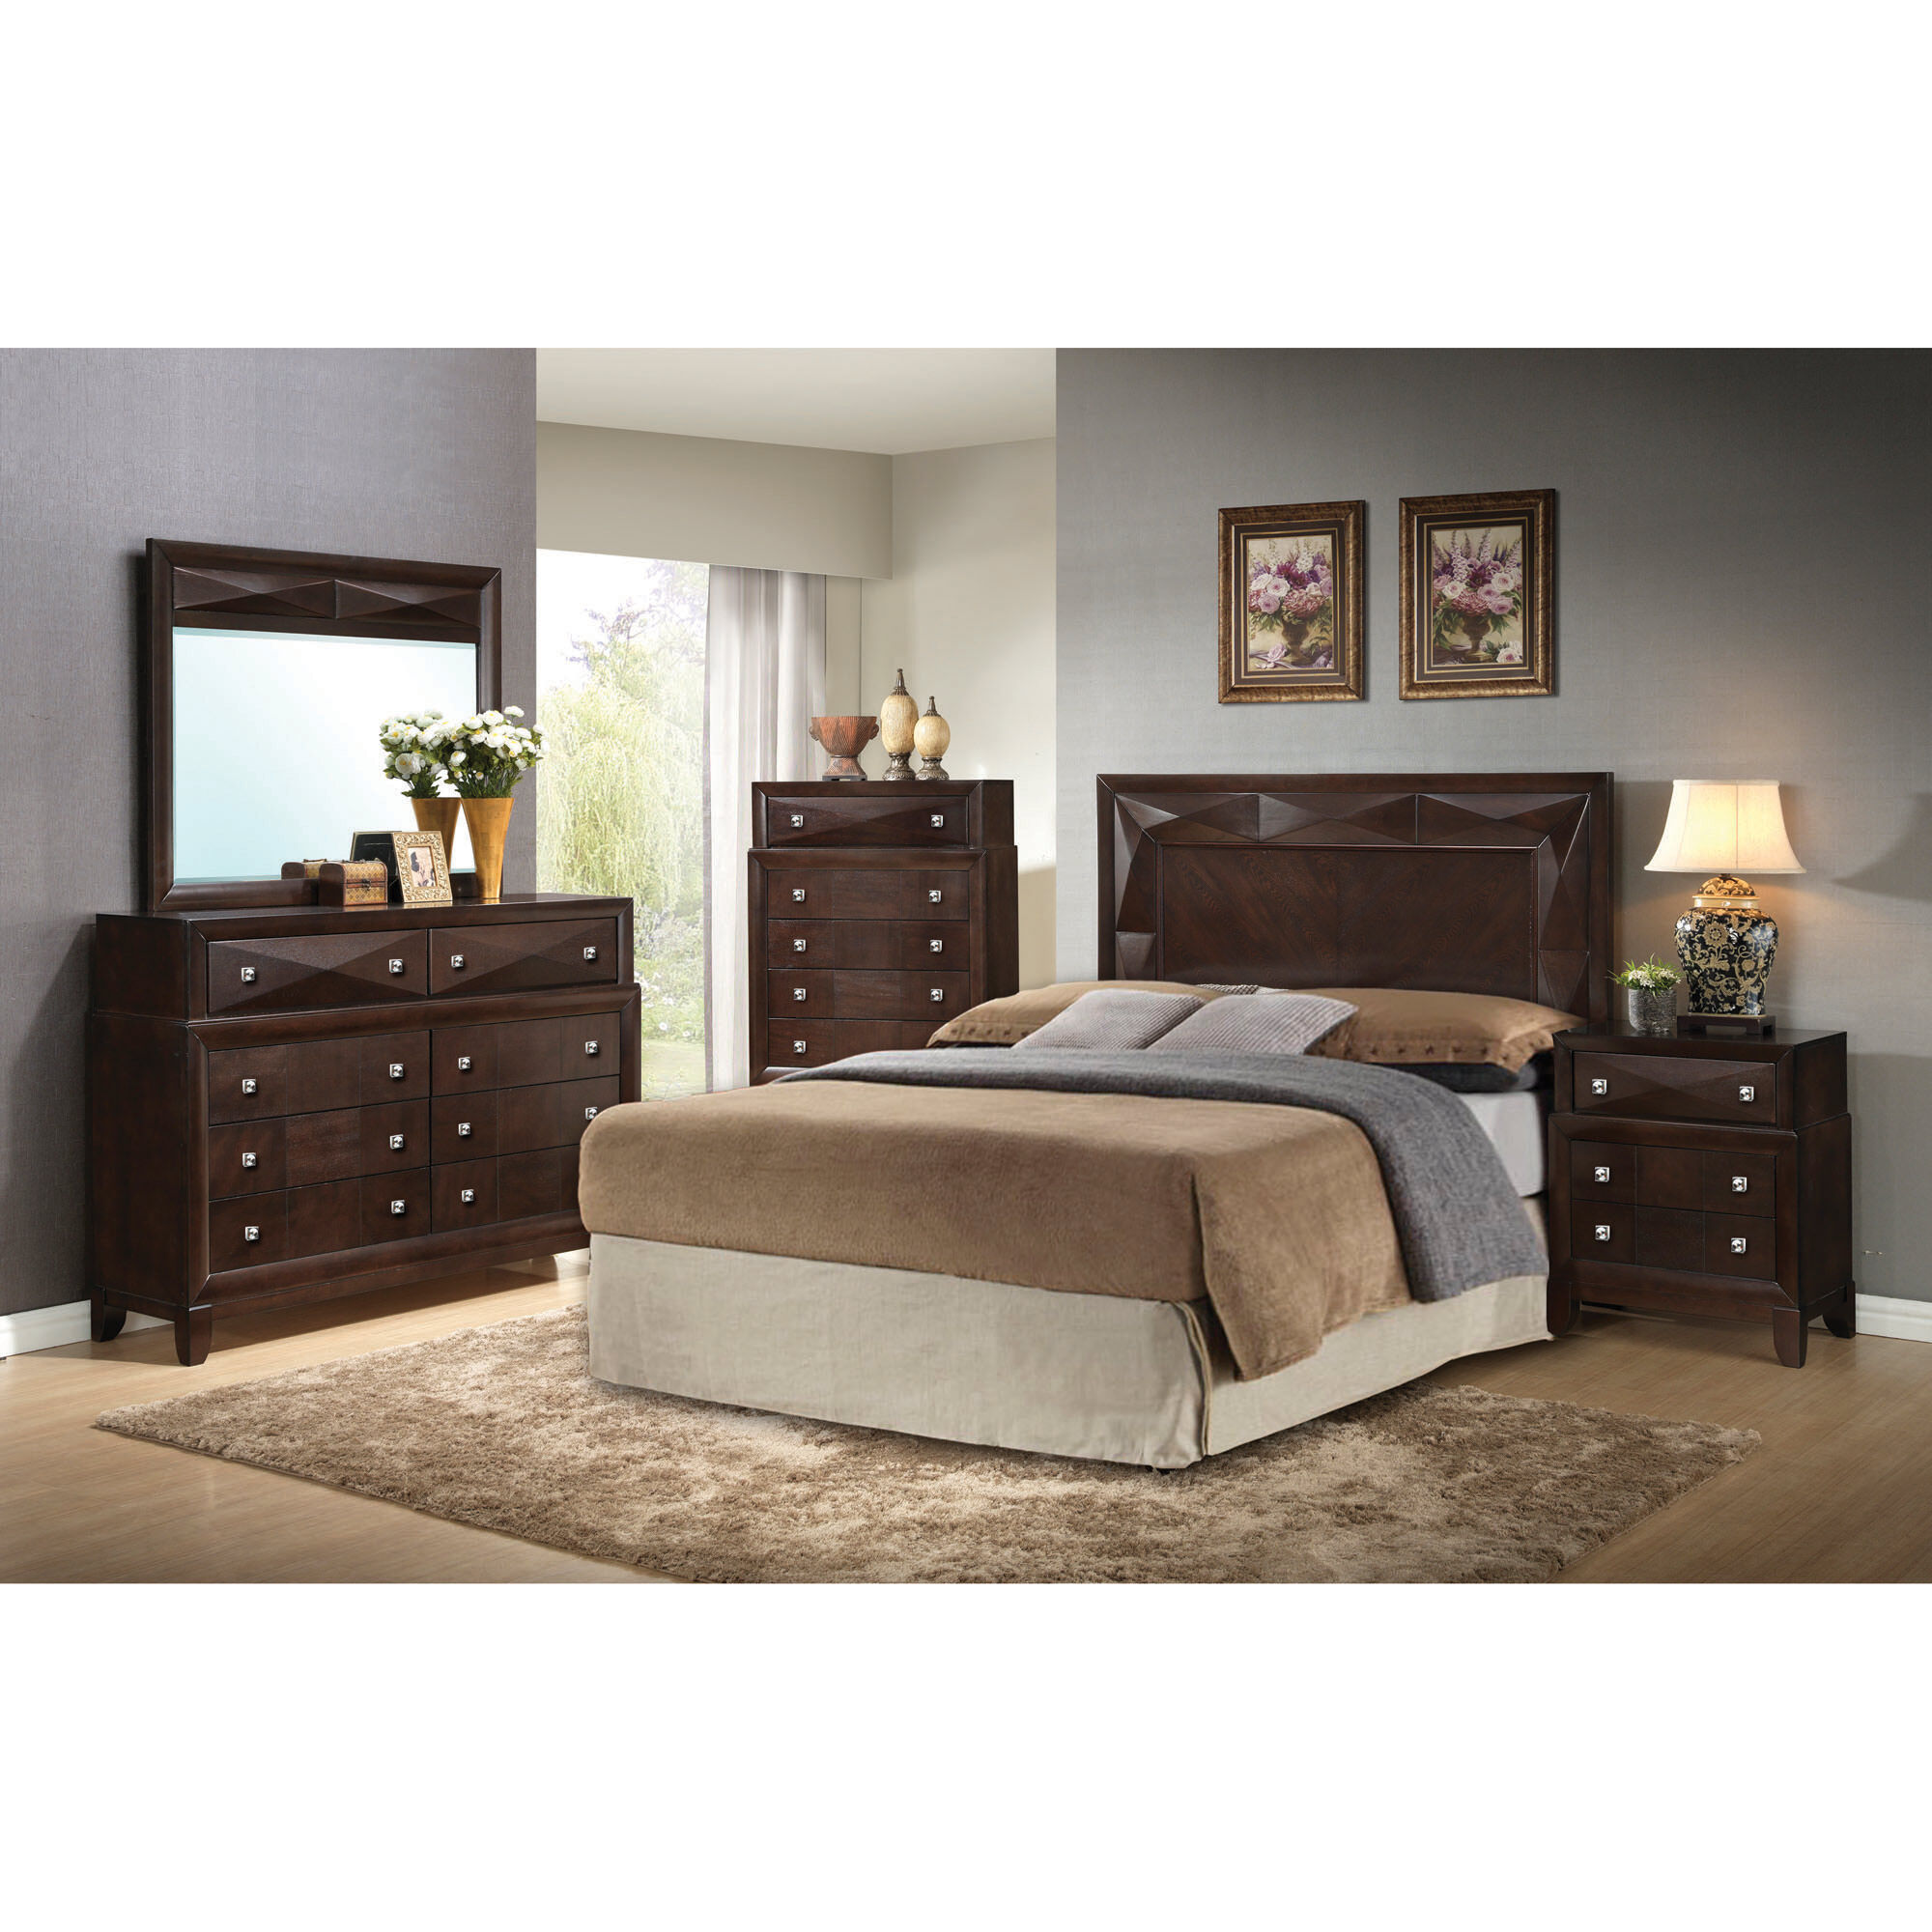 Exceptionnel 5 Piece Kingsbury Queen Bedroom Collection